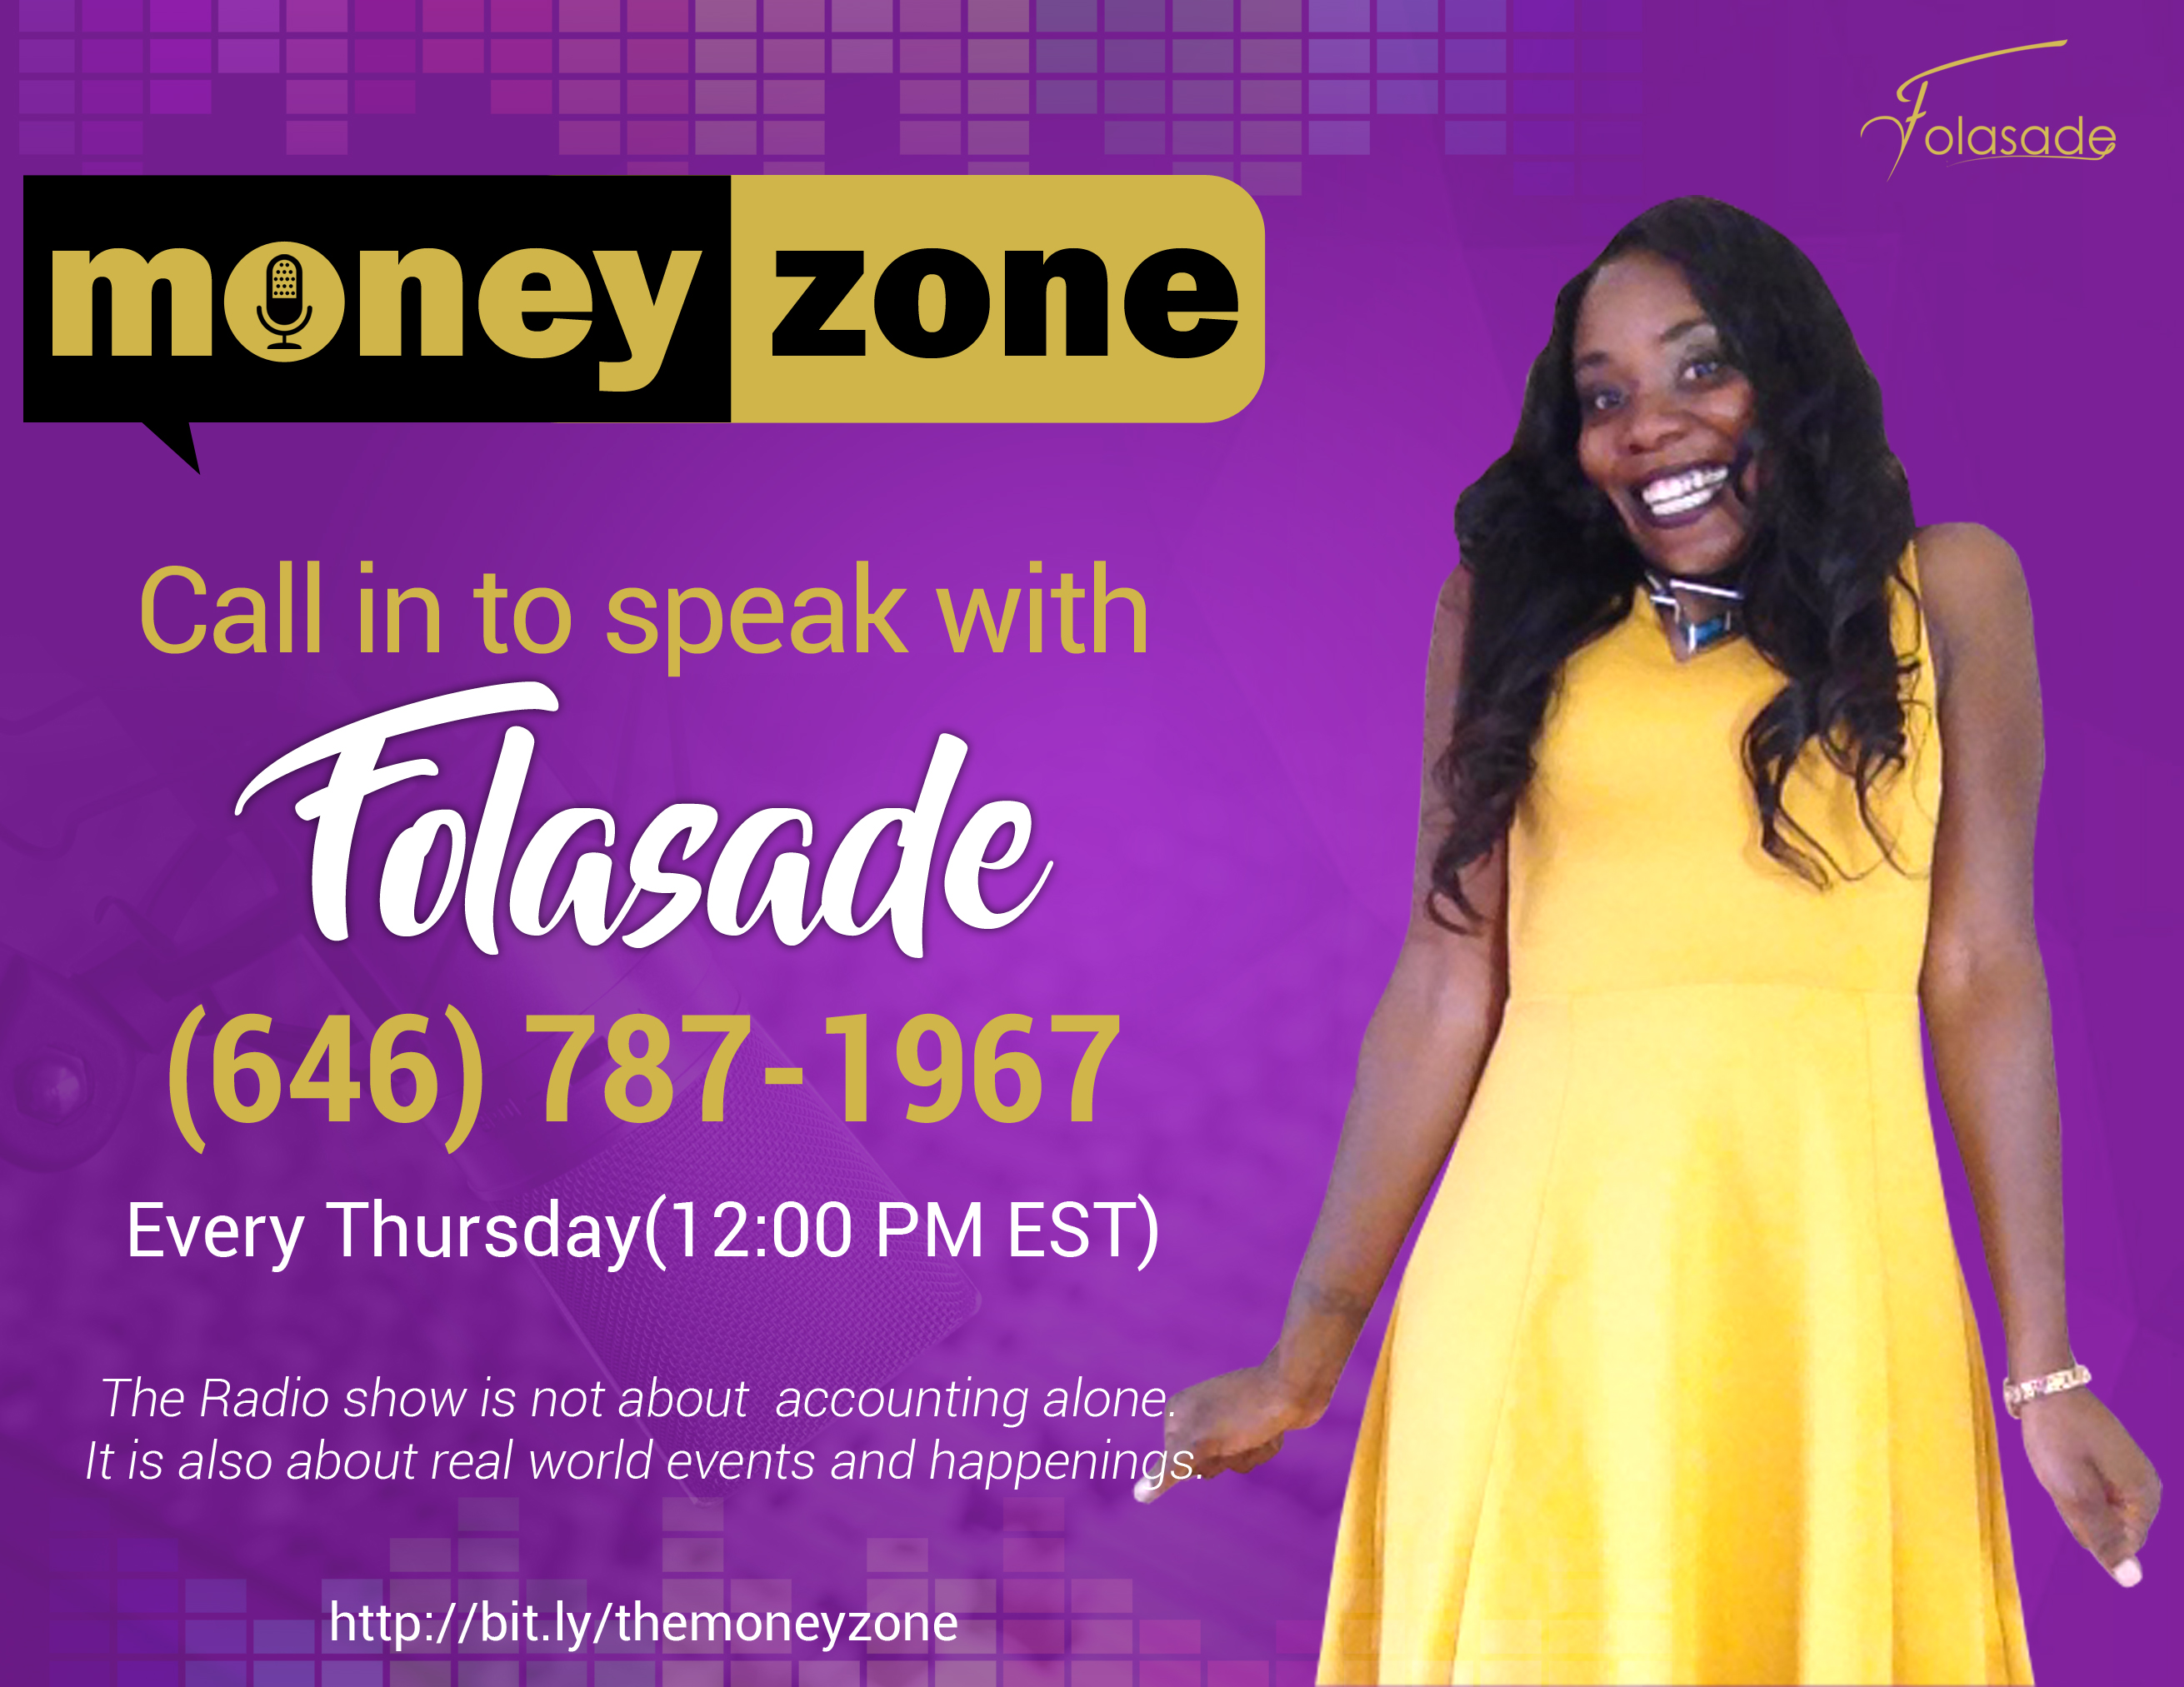 radio-show-flyer-_money_zone_2.jpg